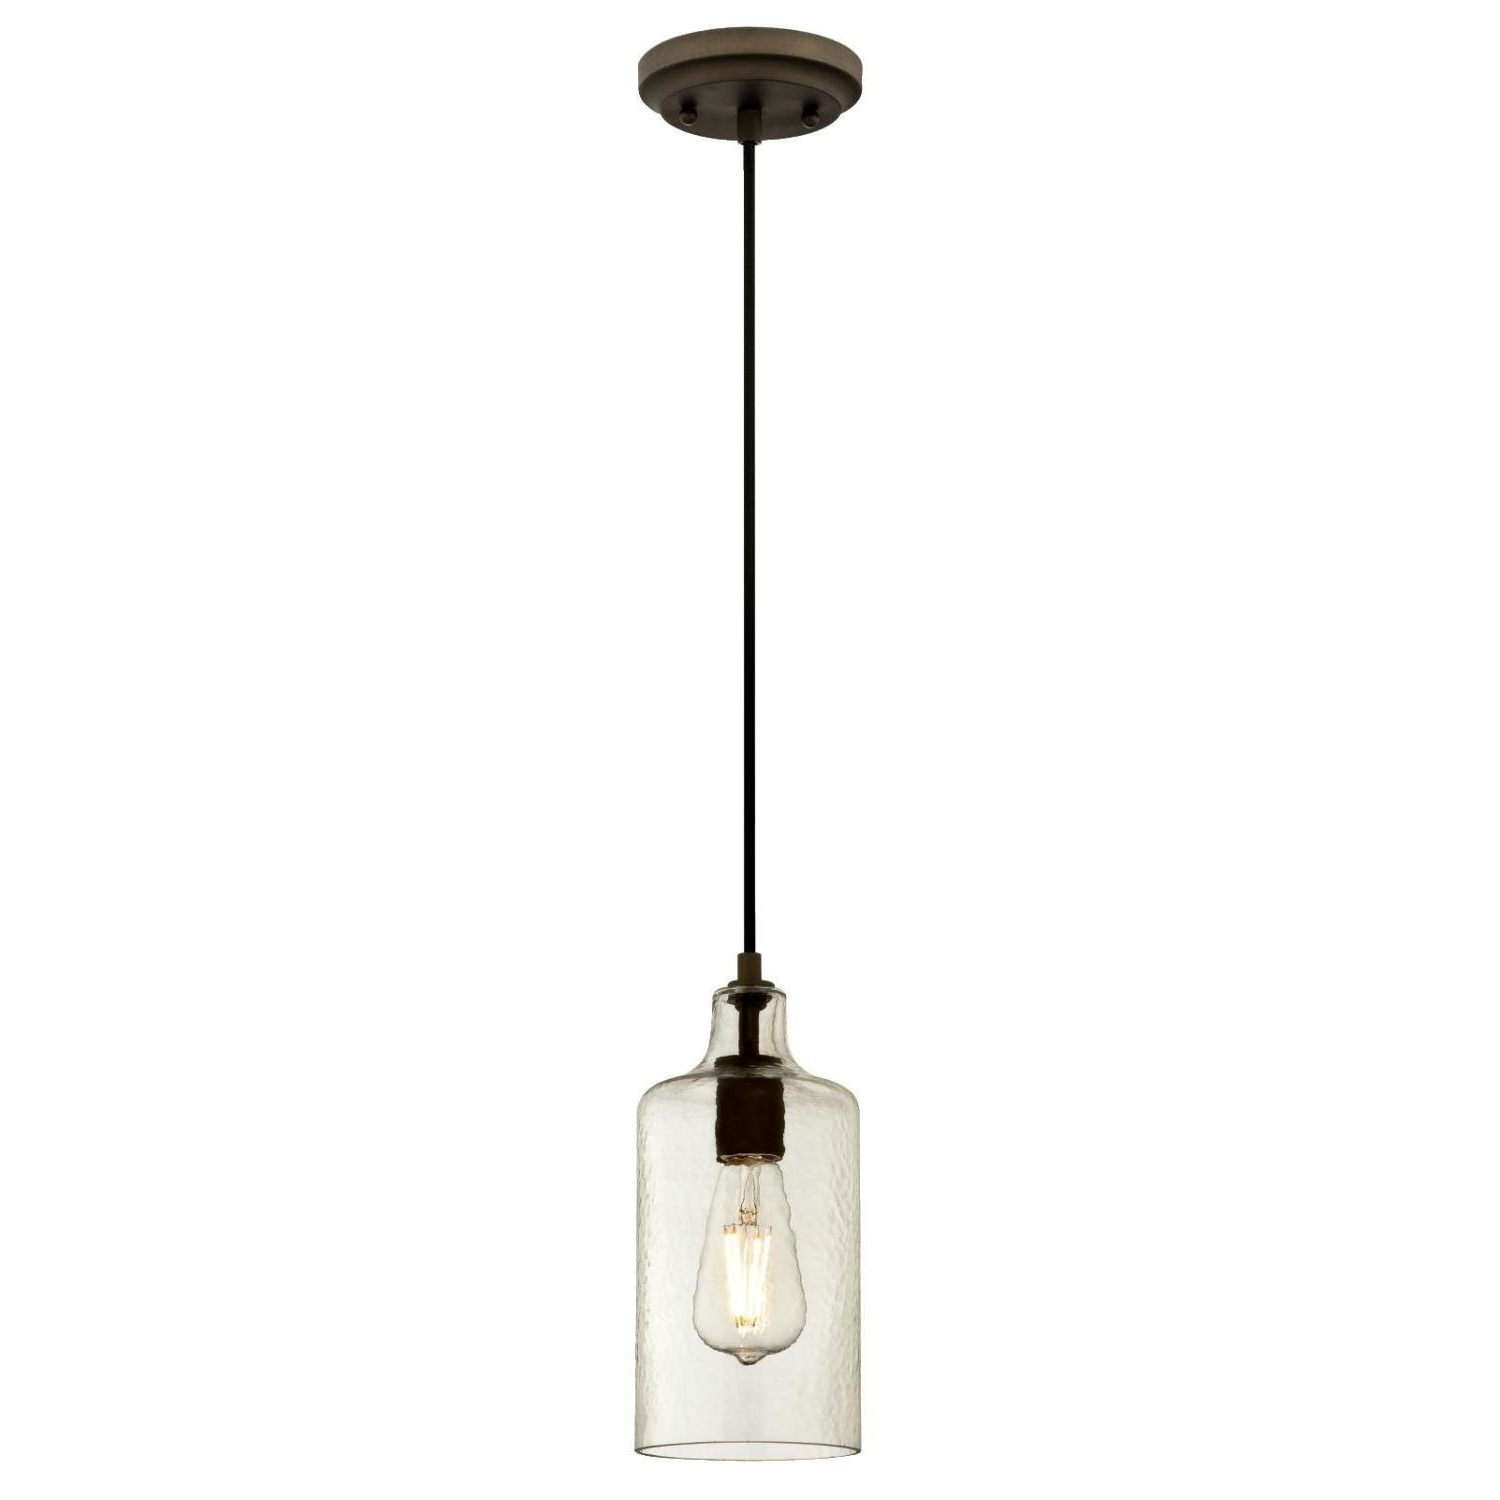 2020 Jayce 1 Light Cylinder Pendant In Jayce 1 Light Cylinder Pendants (Gallery 1 of 20)